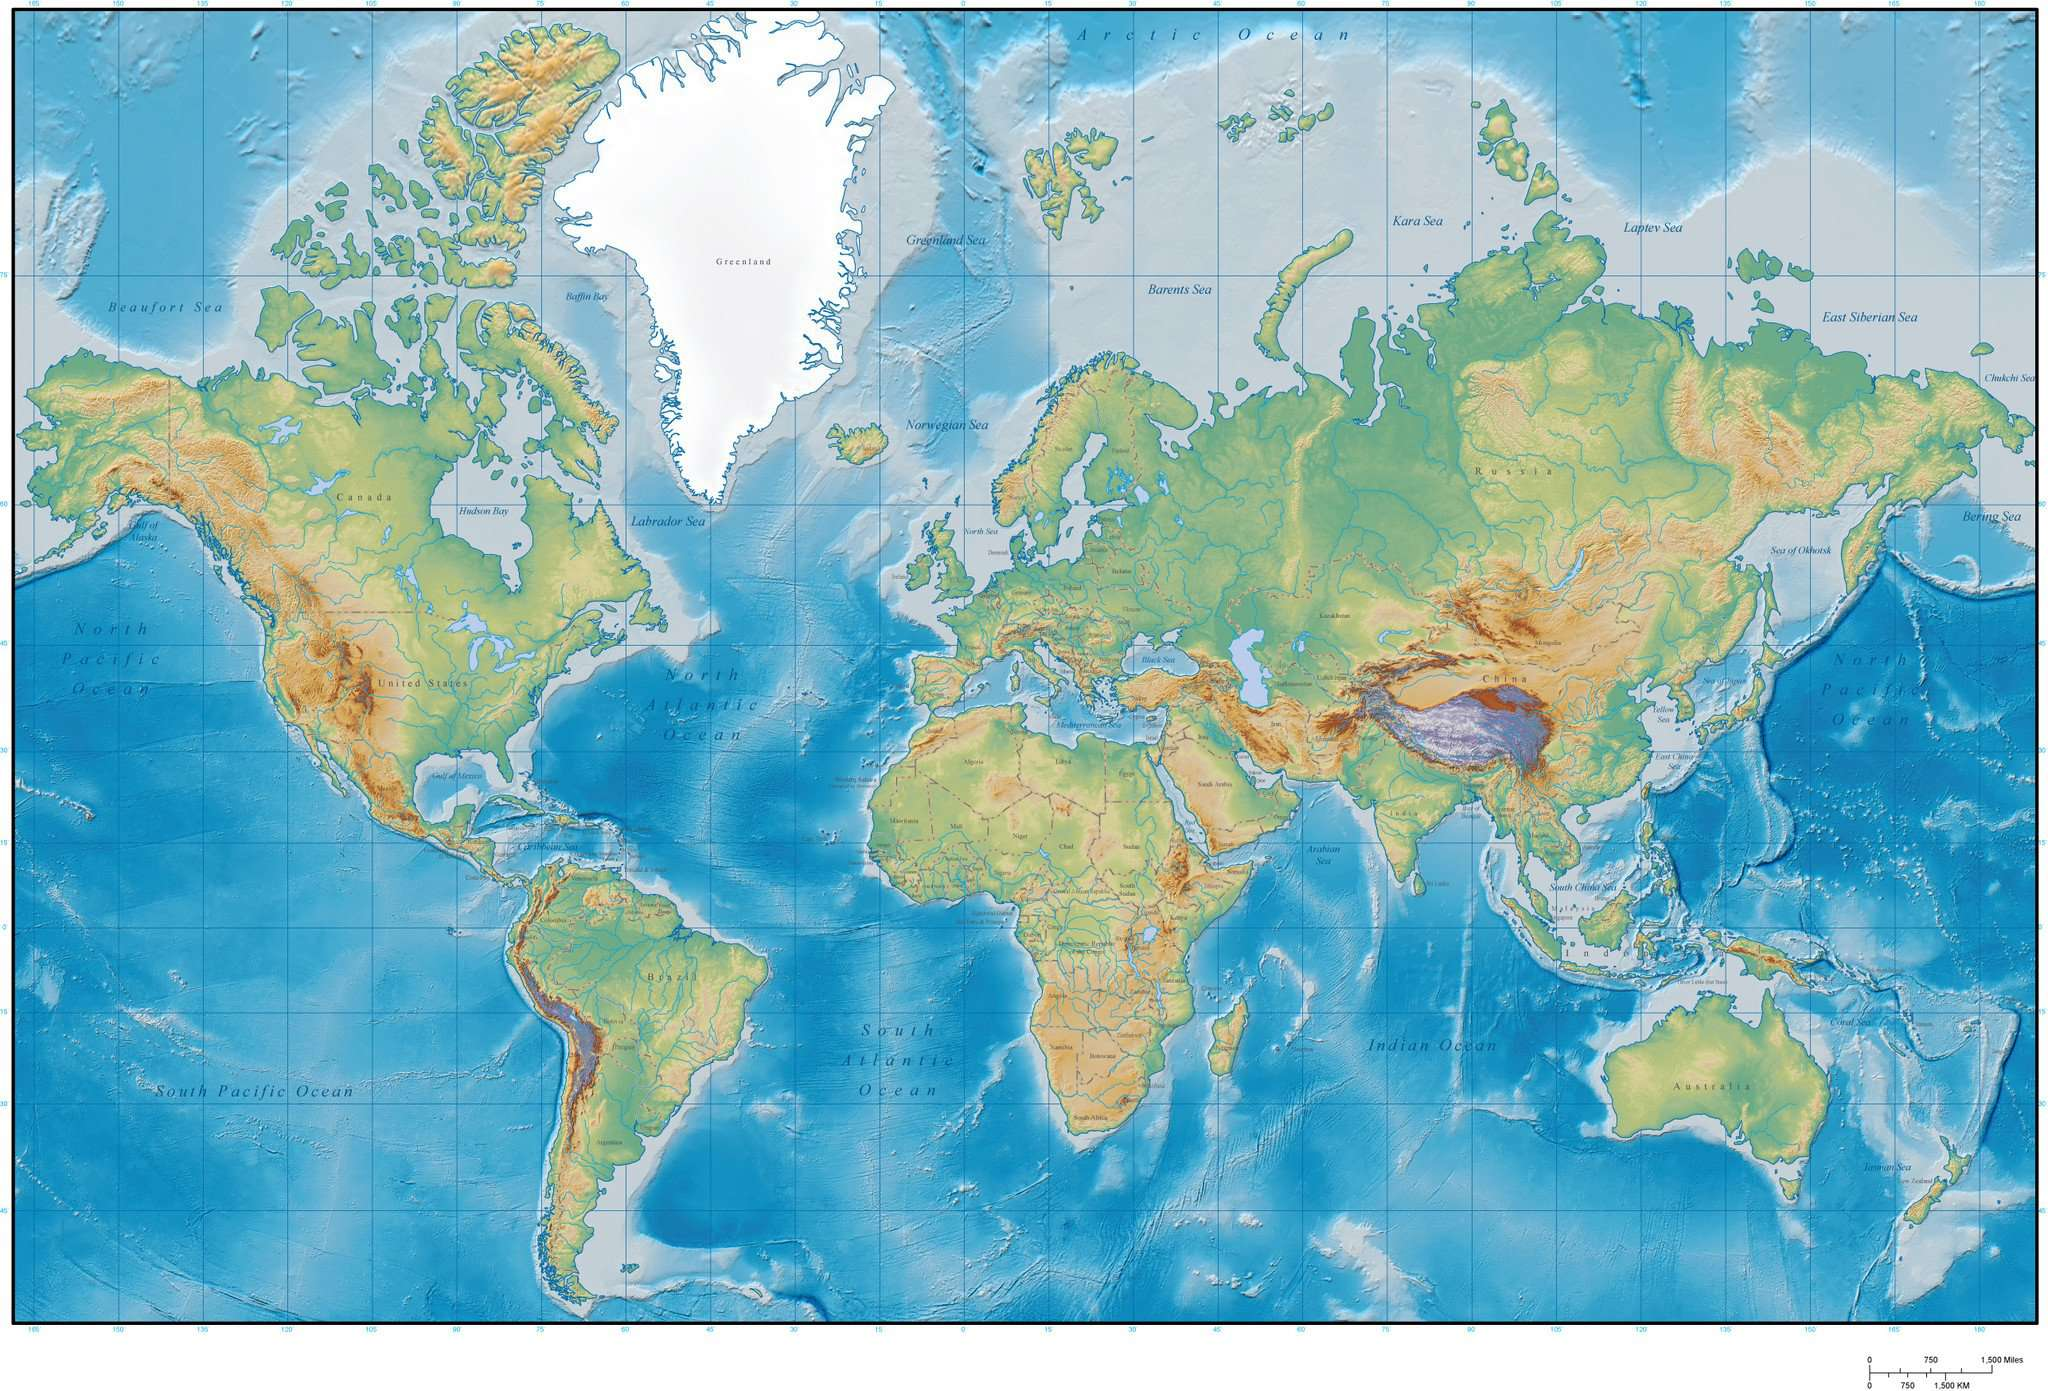 Digital Terrain World Map Mercator Projection With Country - Earth terrain map